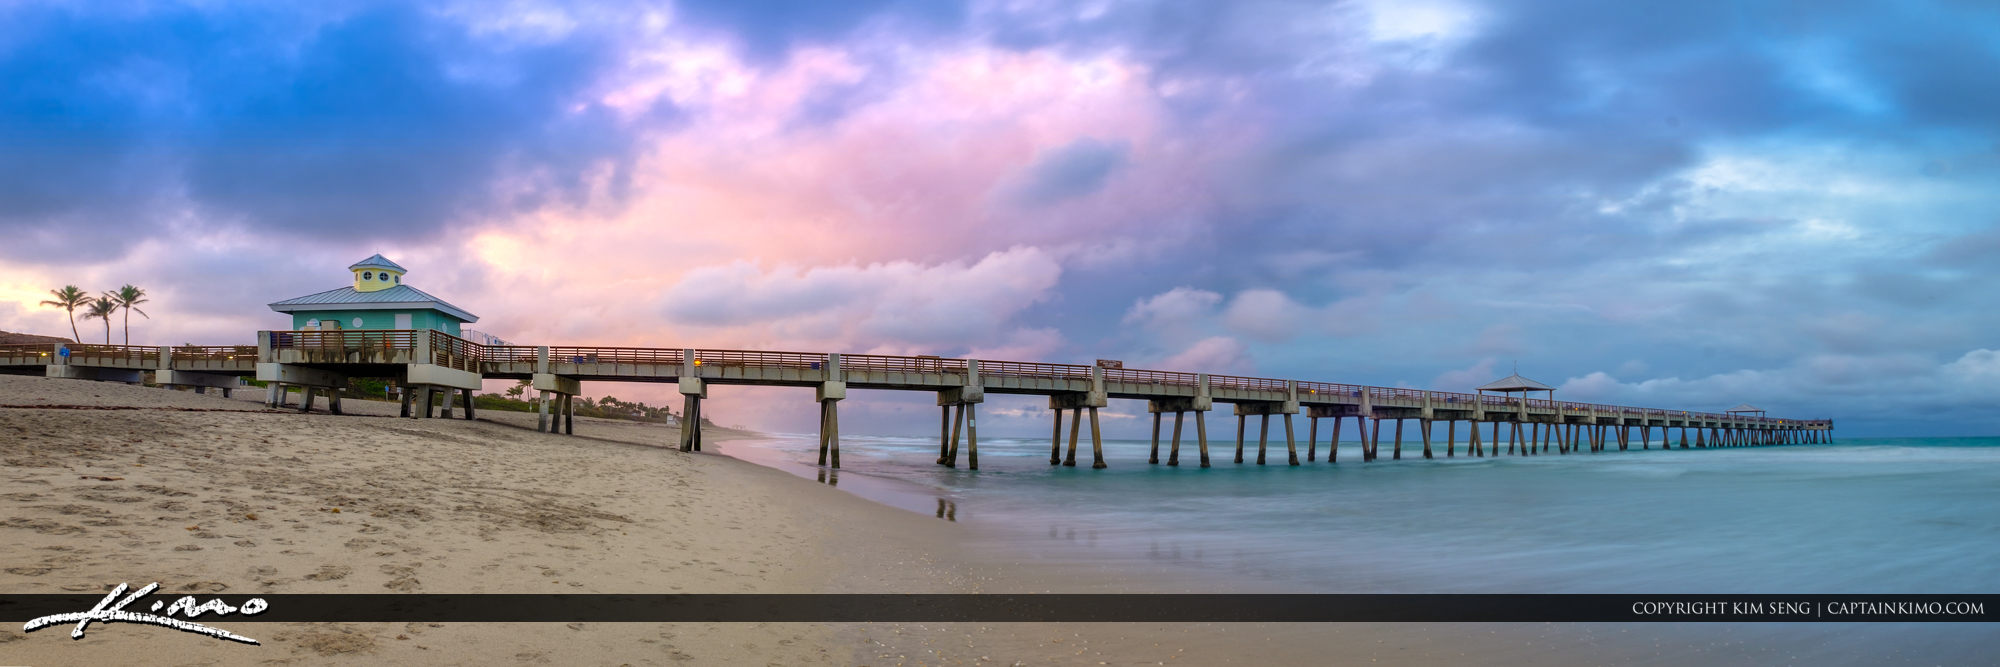 Panoramic Juno Pier Image South Florida